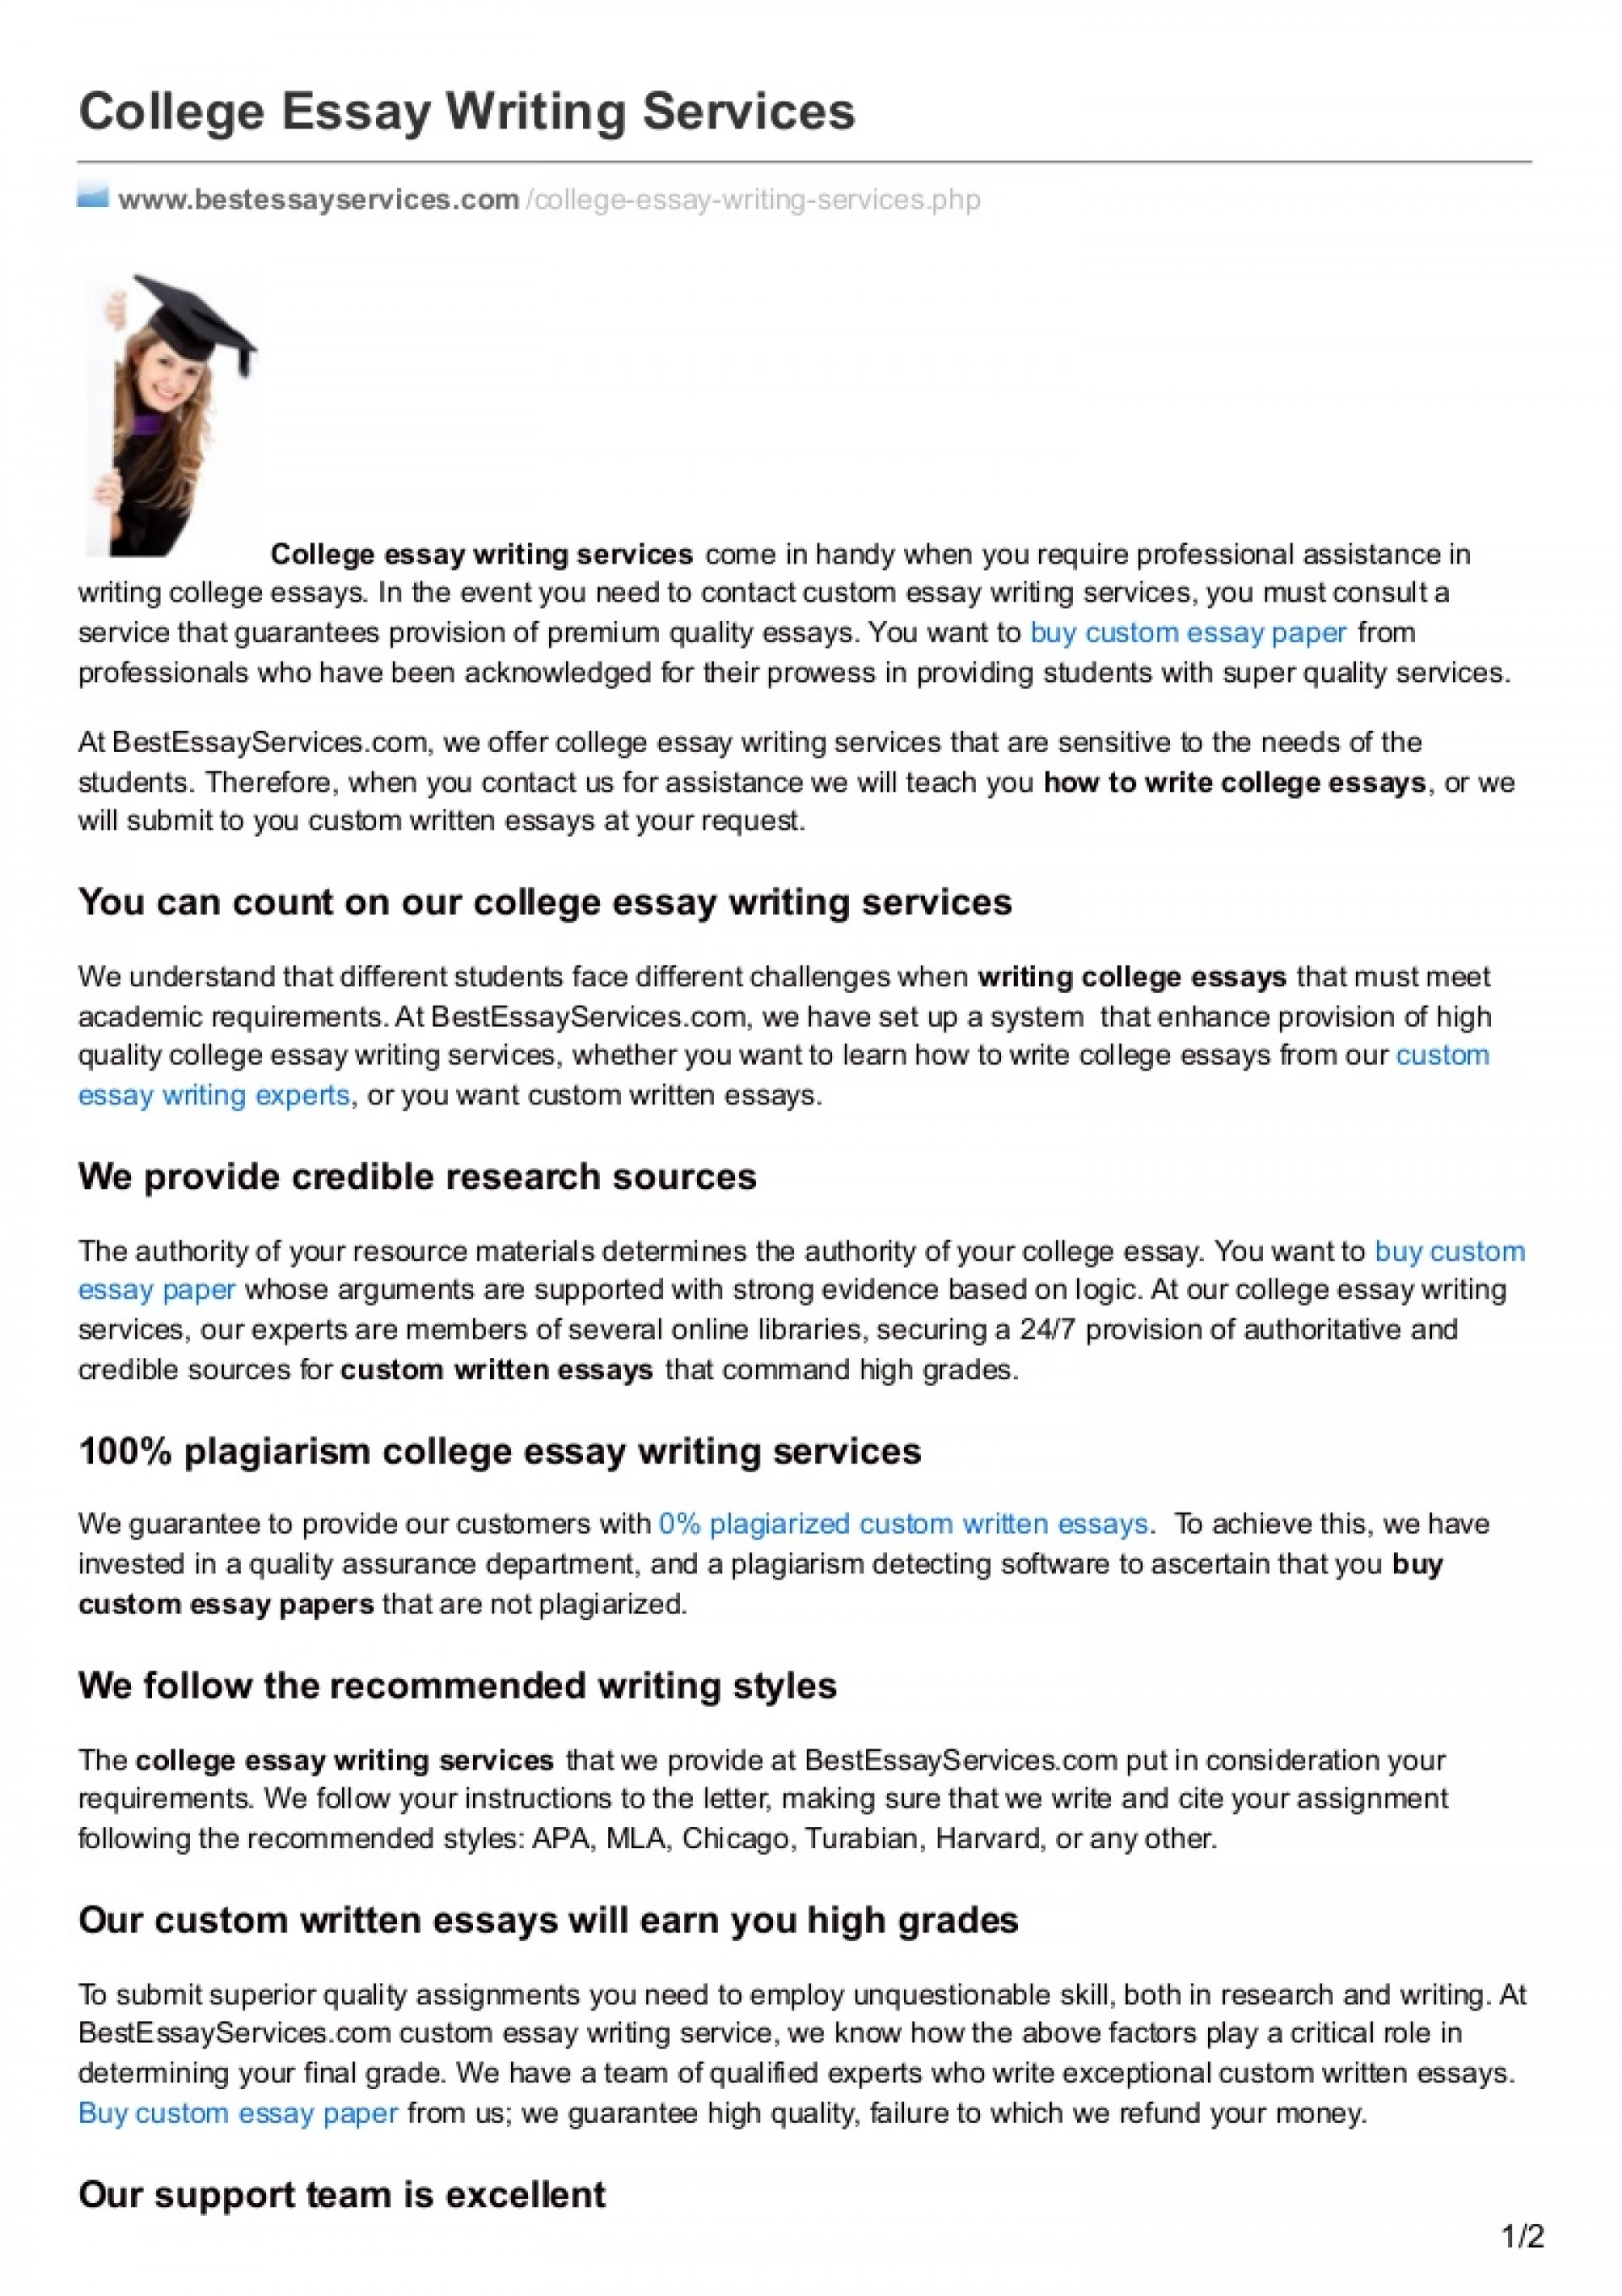 011 Bestessayservices Com College Essay Writing Services I Want To Write Essays For Money Thumbn Best Uni Scholarship 1920